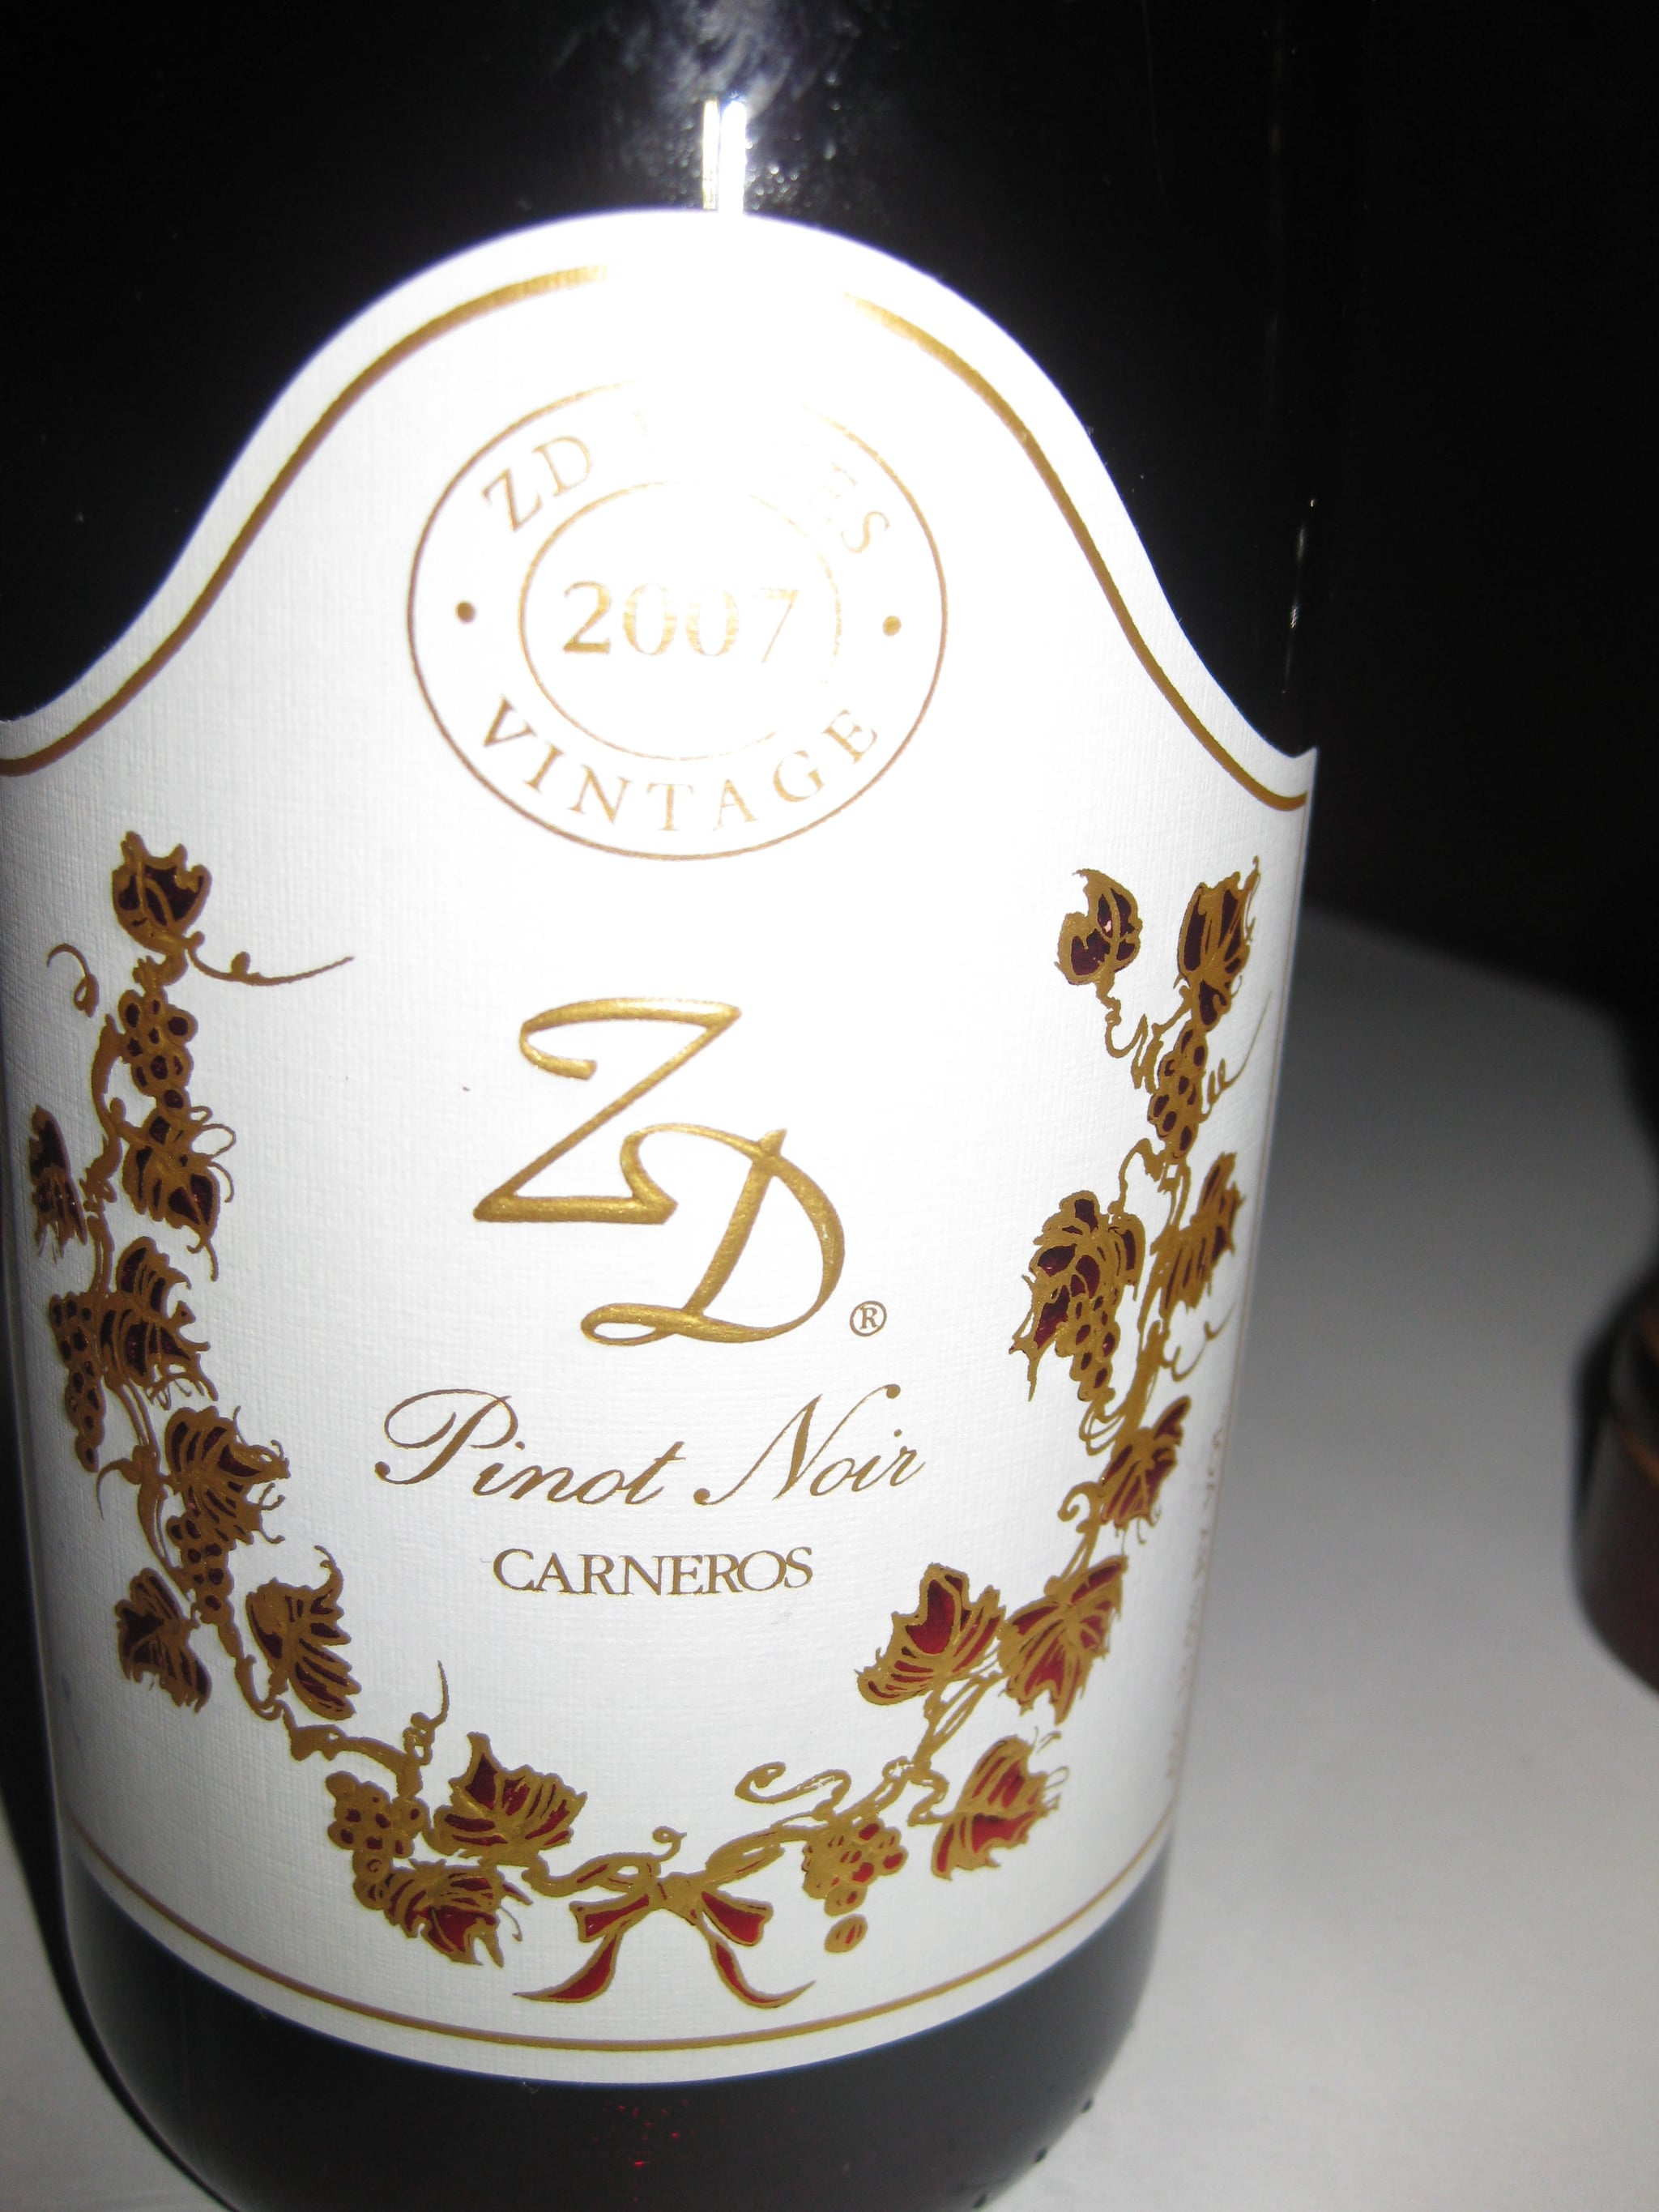 One of the superb wine's I tasted at Scala's Bistro.